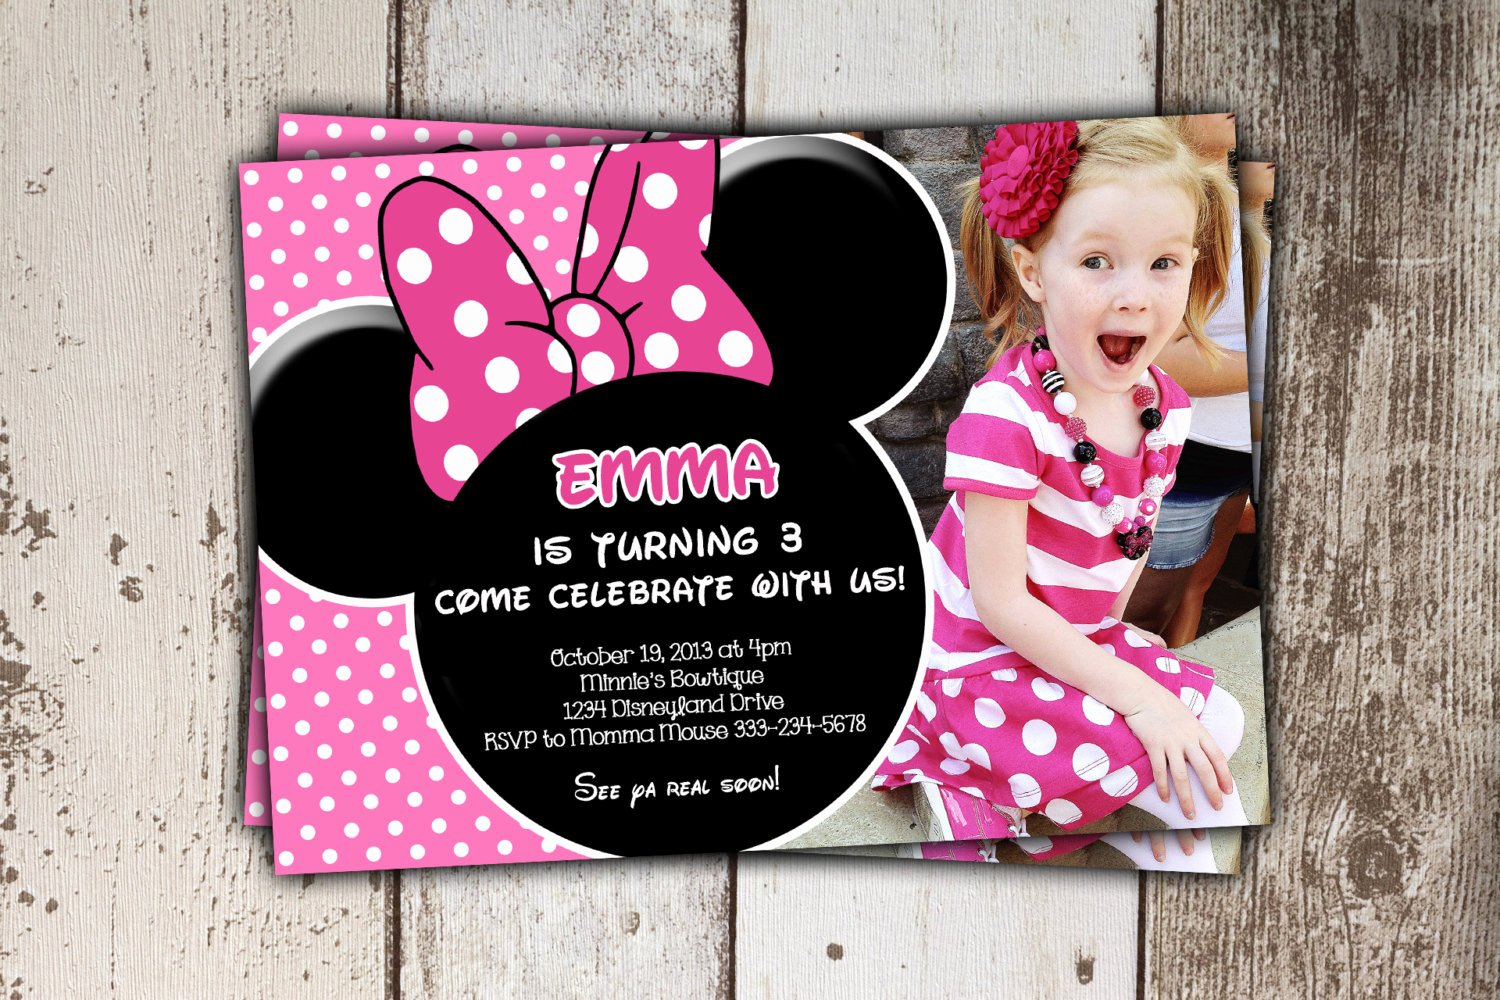 Minnie Mouse Birthday Invitations Beautiful Minnie Mouse Invitations Pink Birthday Invitations with